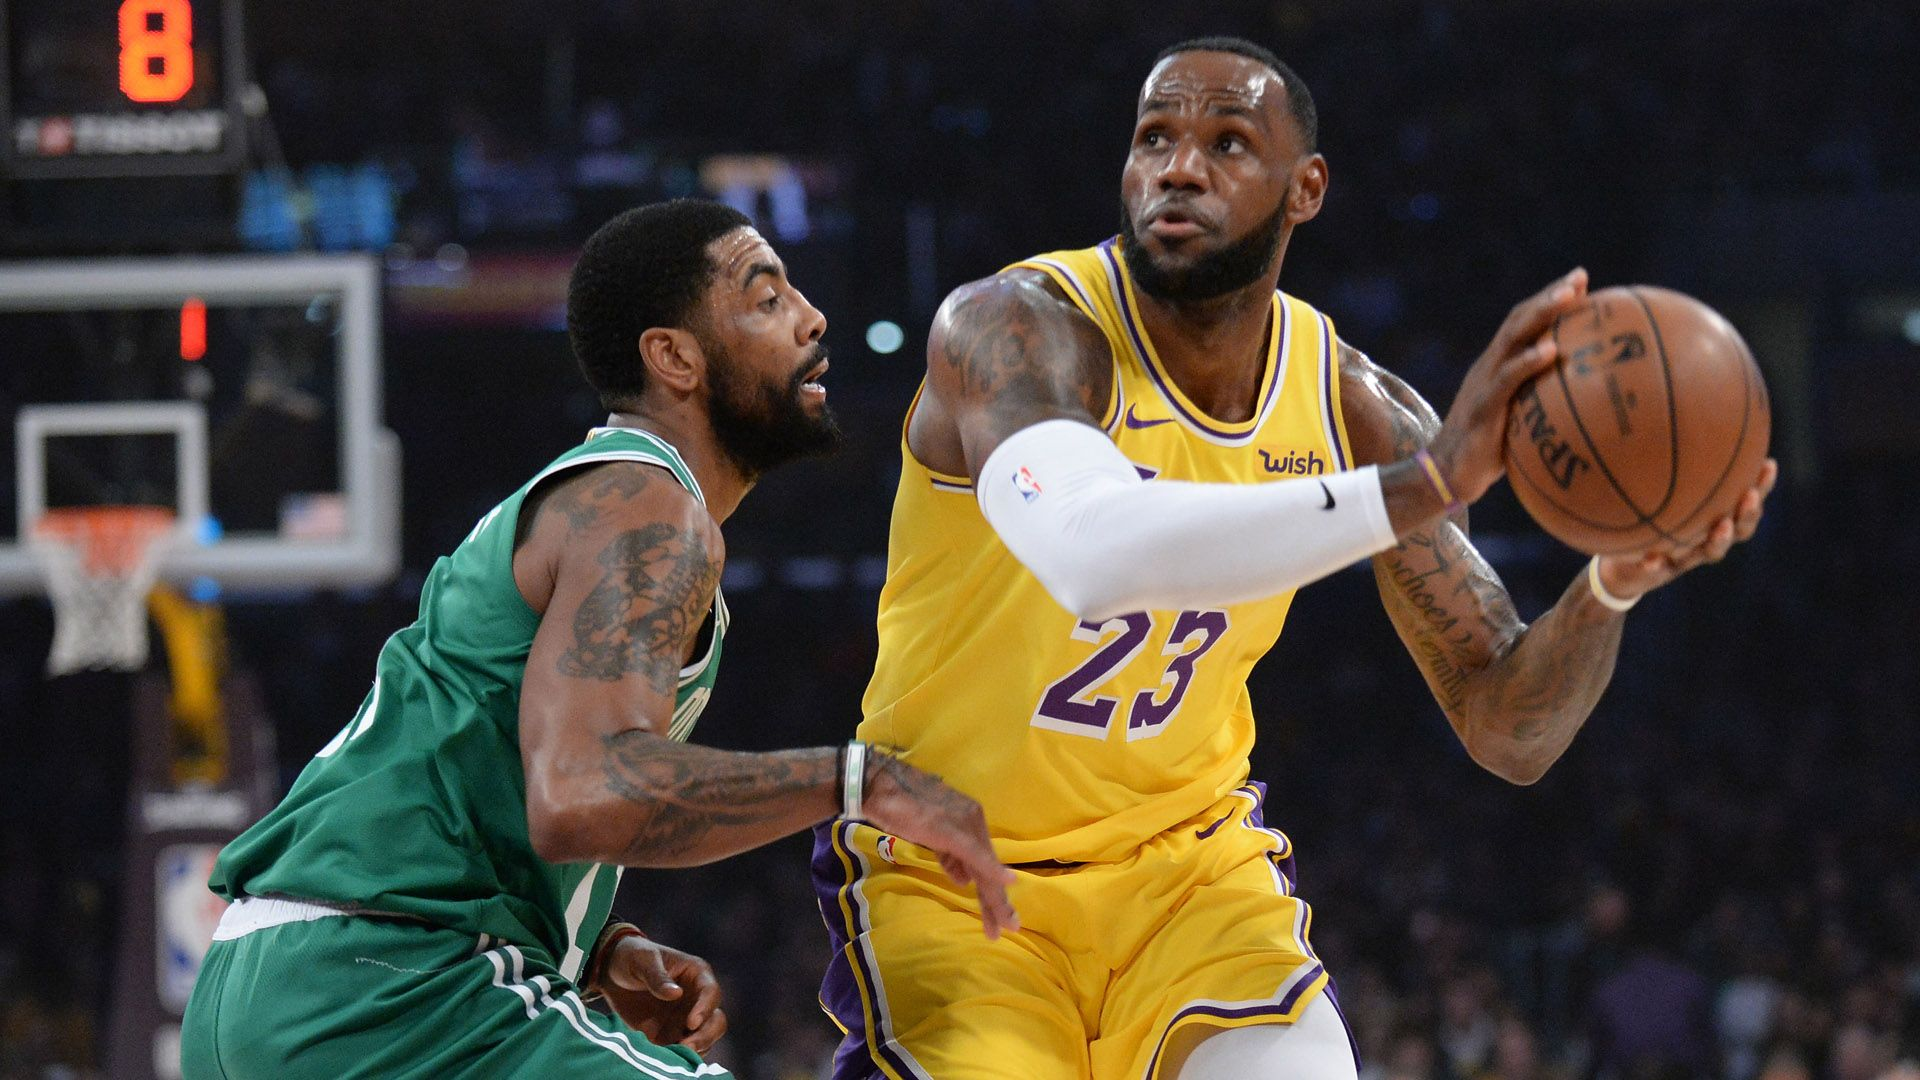 NBA rumors: Kyrie Irving has discussed joining LeBron James, Lakers